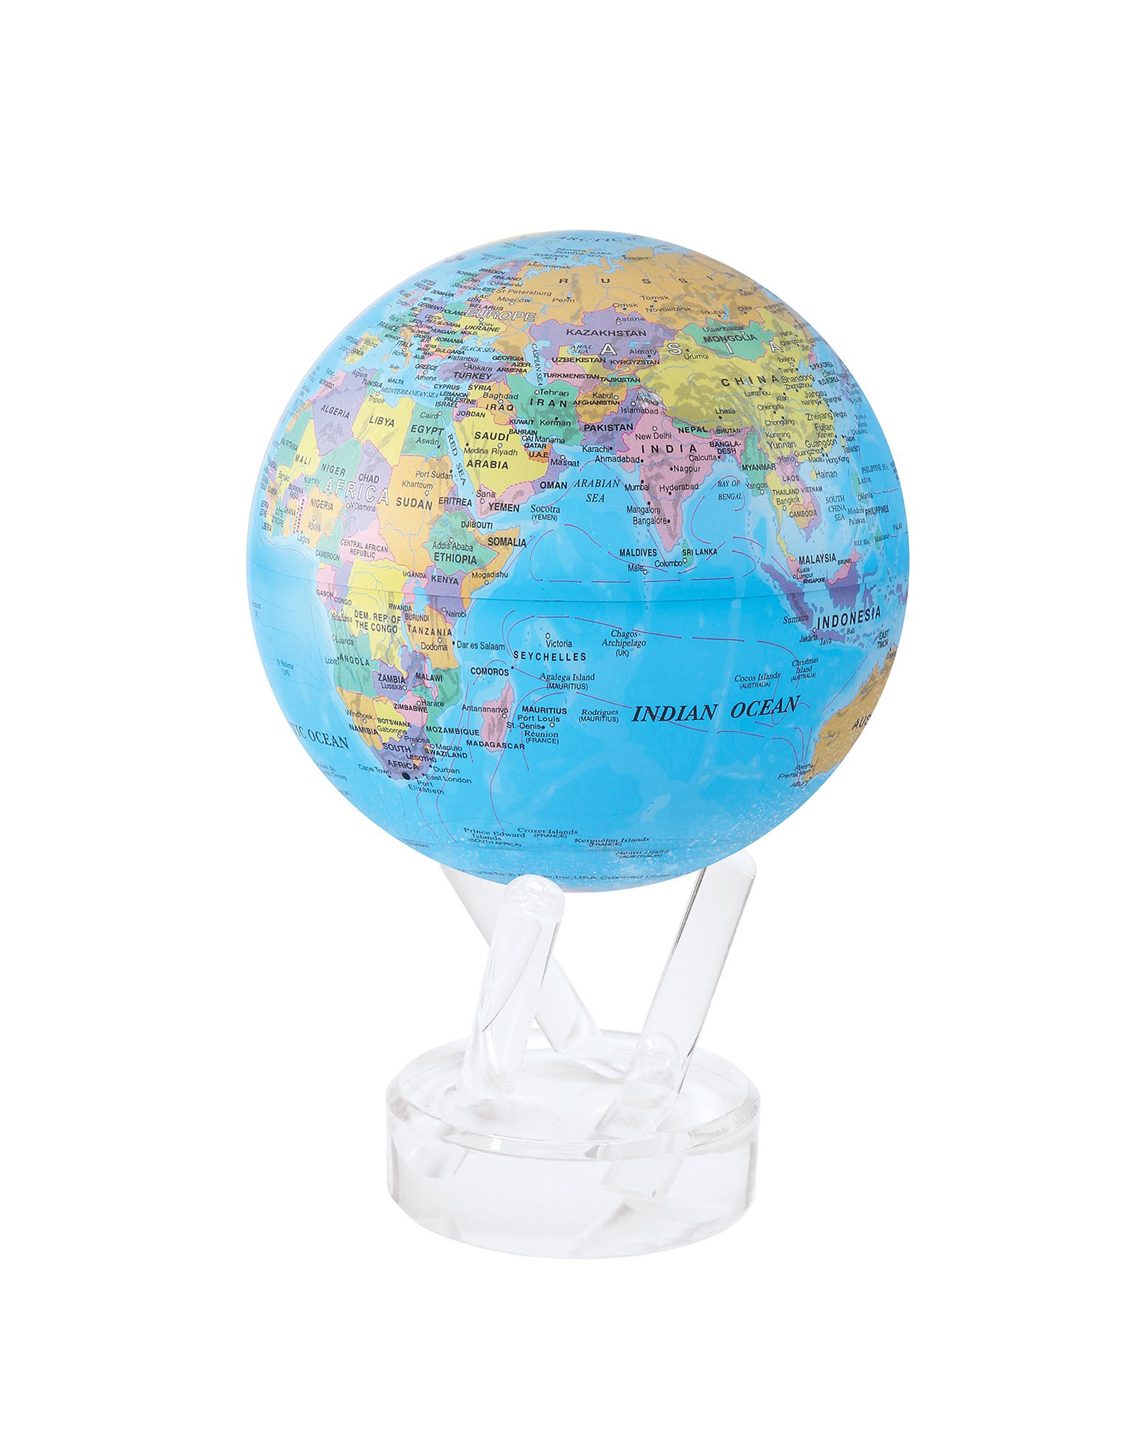 MOVA Political Map Blue Globe with Acrylic Base on united states map, country map, globe bar, syria map, canada map, physical map, middle east map, nebraska map, political map, america map, world map, earth map, continent map, robinson map, vintage globe, global map, vermont map, google map, australia map, world globes, hemisphere map, equator map, floating globe, antique globe, usa map, philippines map, snow globe, globe shoes, antique map, gemstone globe, globe earth, map of fl, new hampshire map, austria map, us and europe map, london map, tectonic plates map, interactive globe, gemstone world globe,